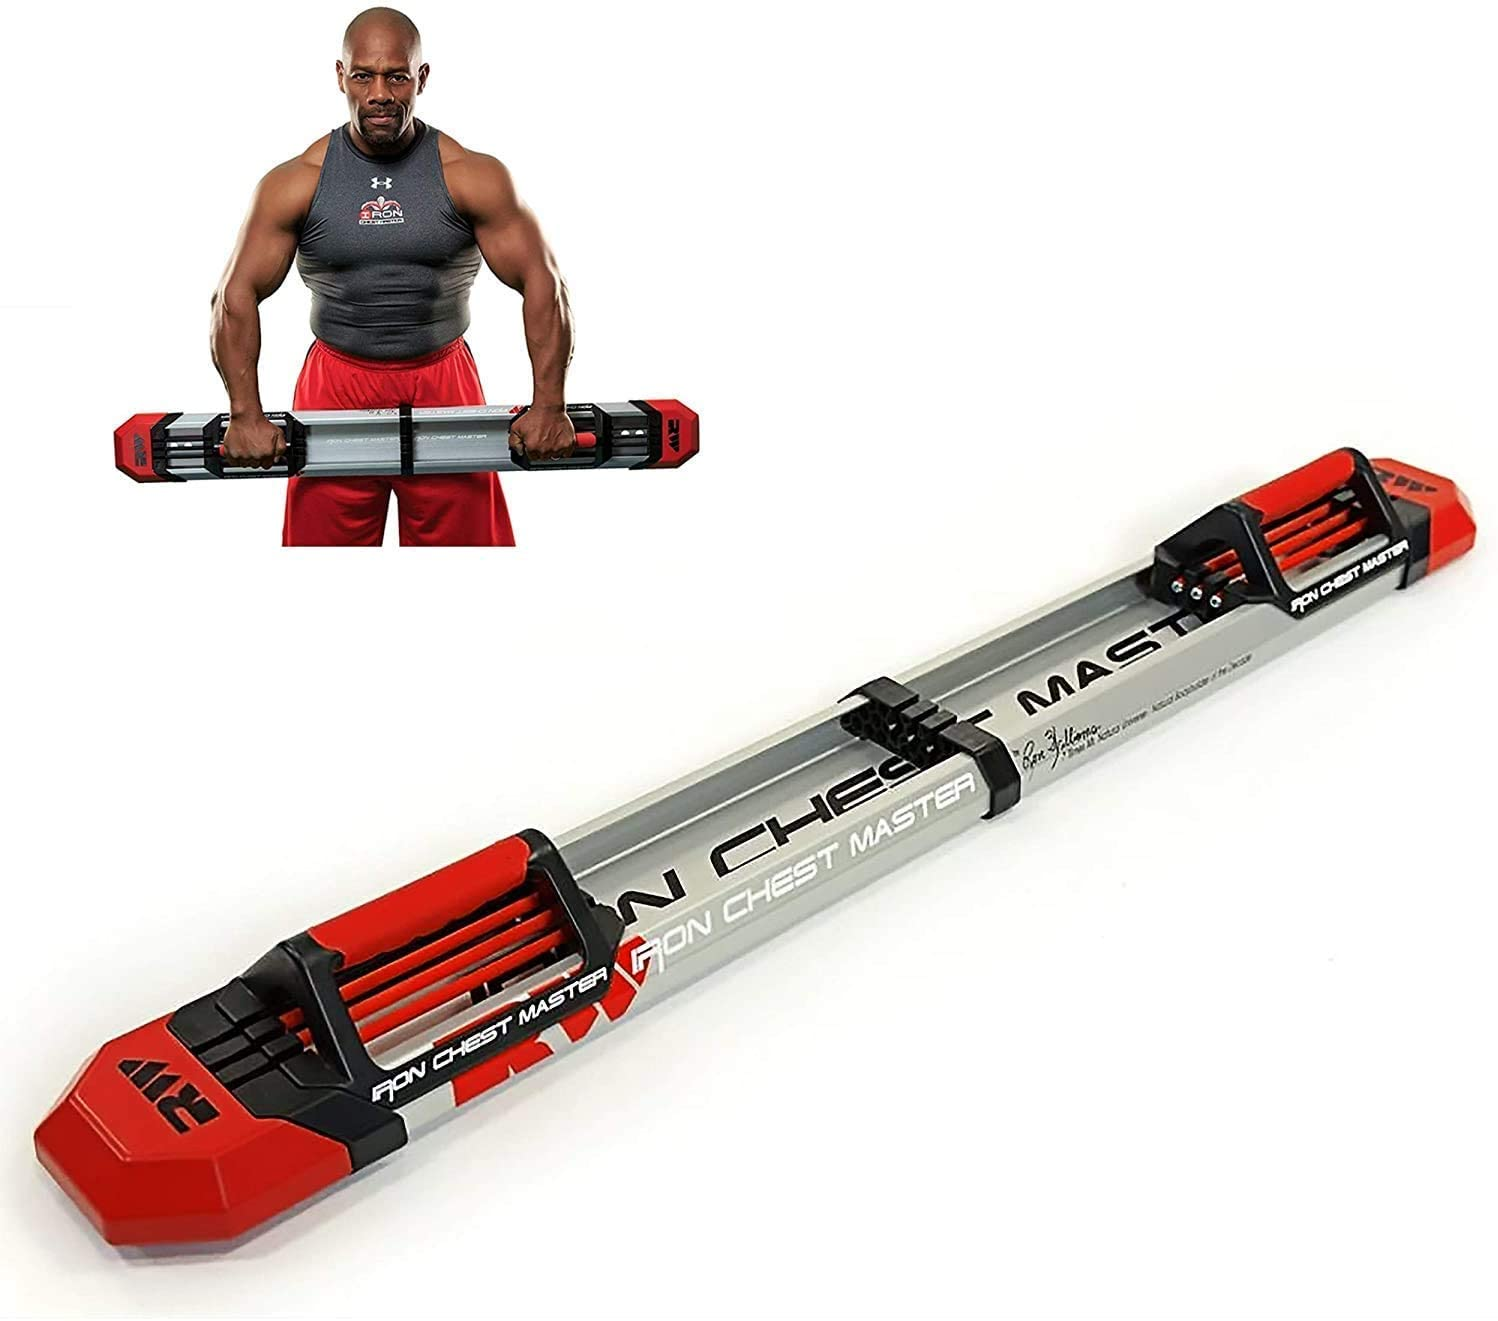 push up machines increase the resistance and effectiveness of push ups